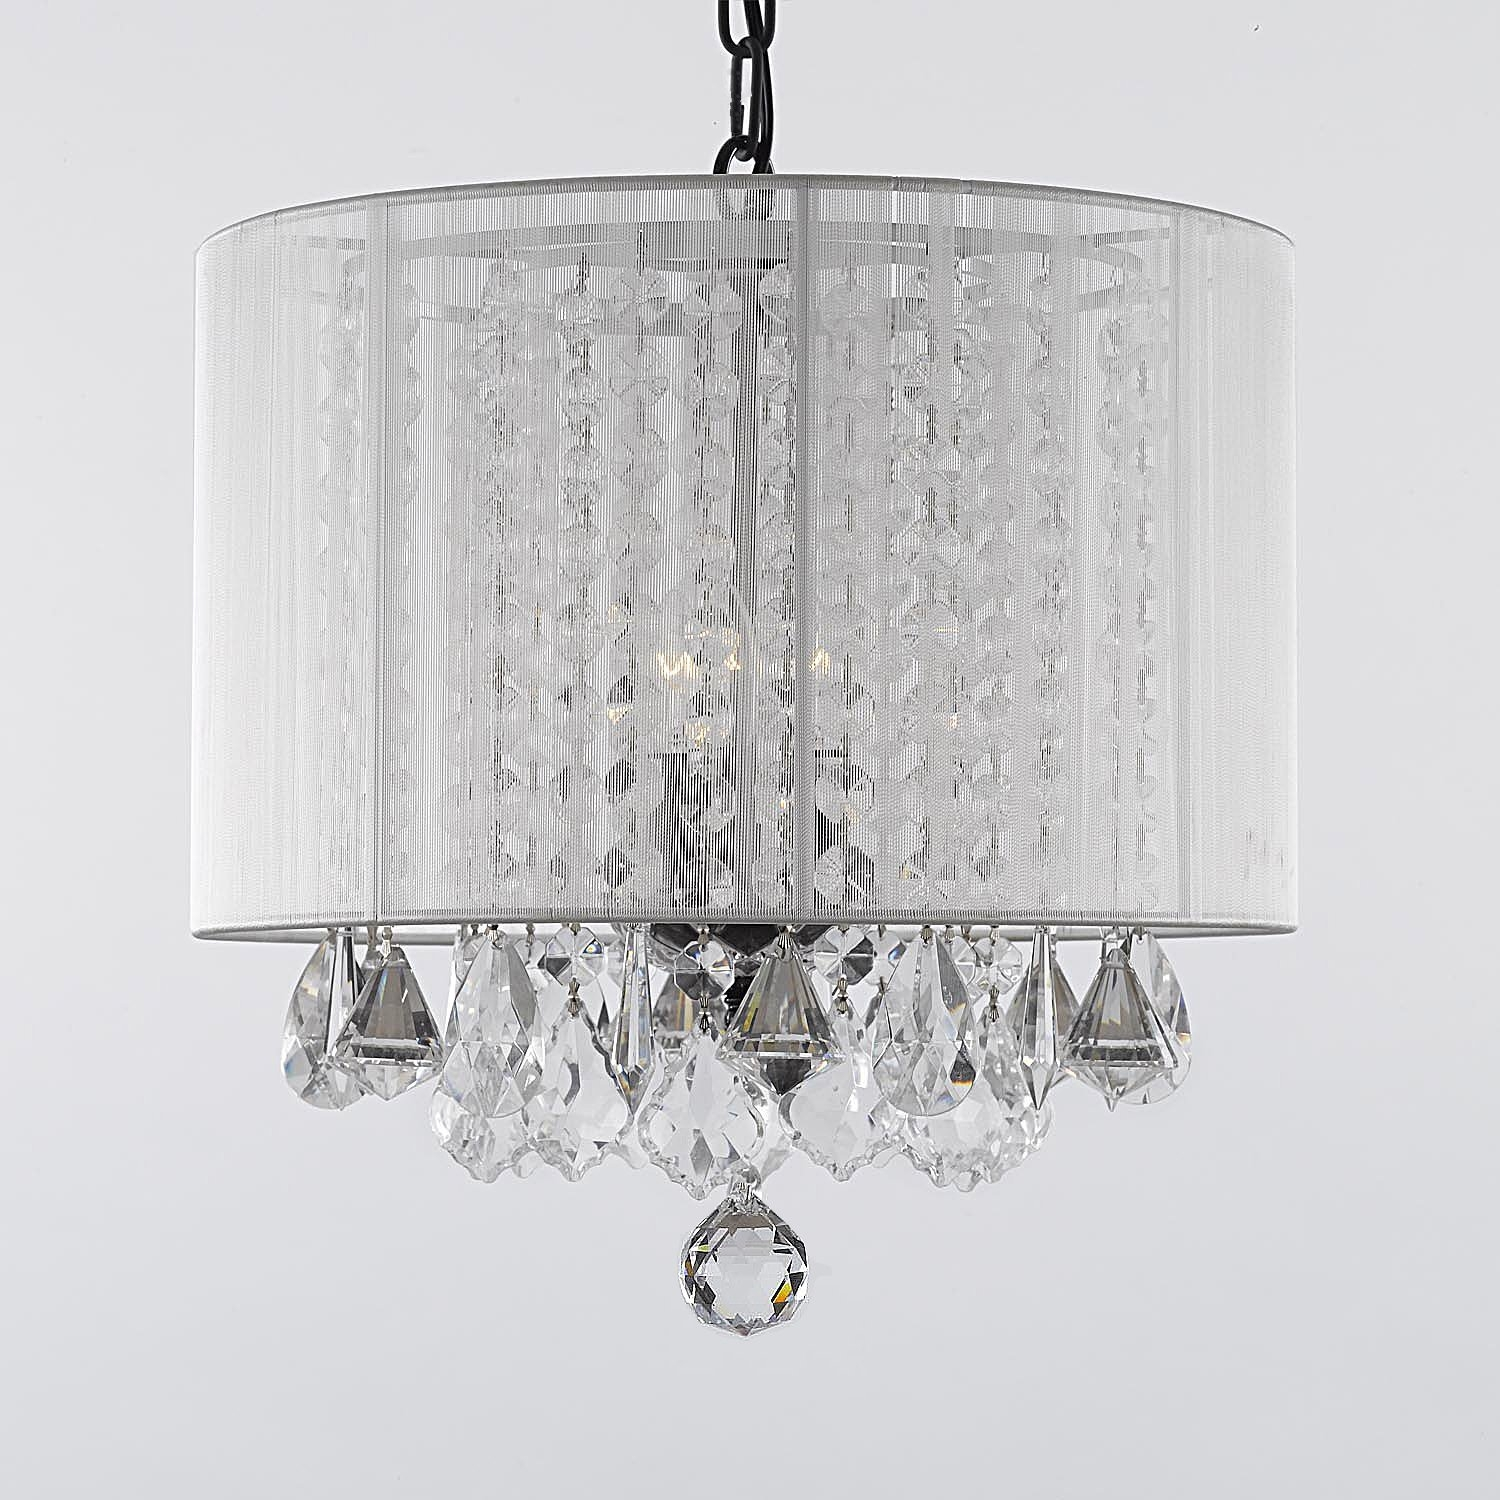 Lamps Small Crystal Chandelier Candle Chandelier Ideas And With Modern Small Chandeliers (#7 of 12)